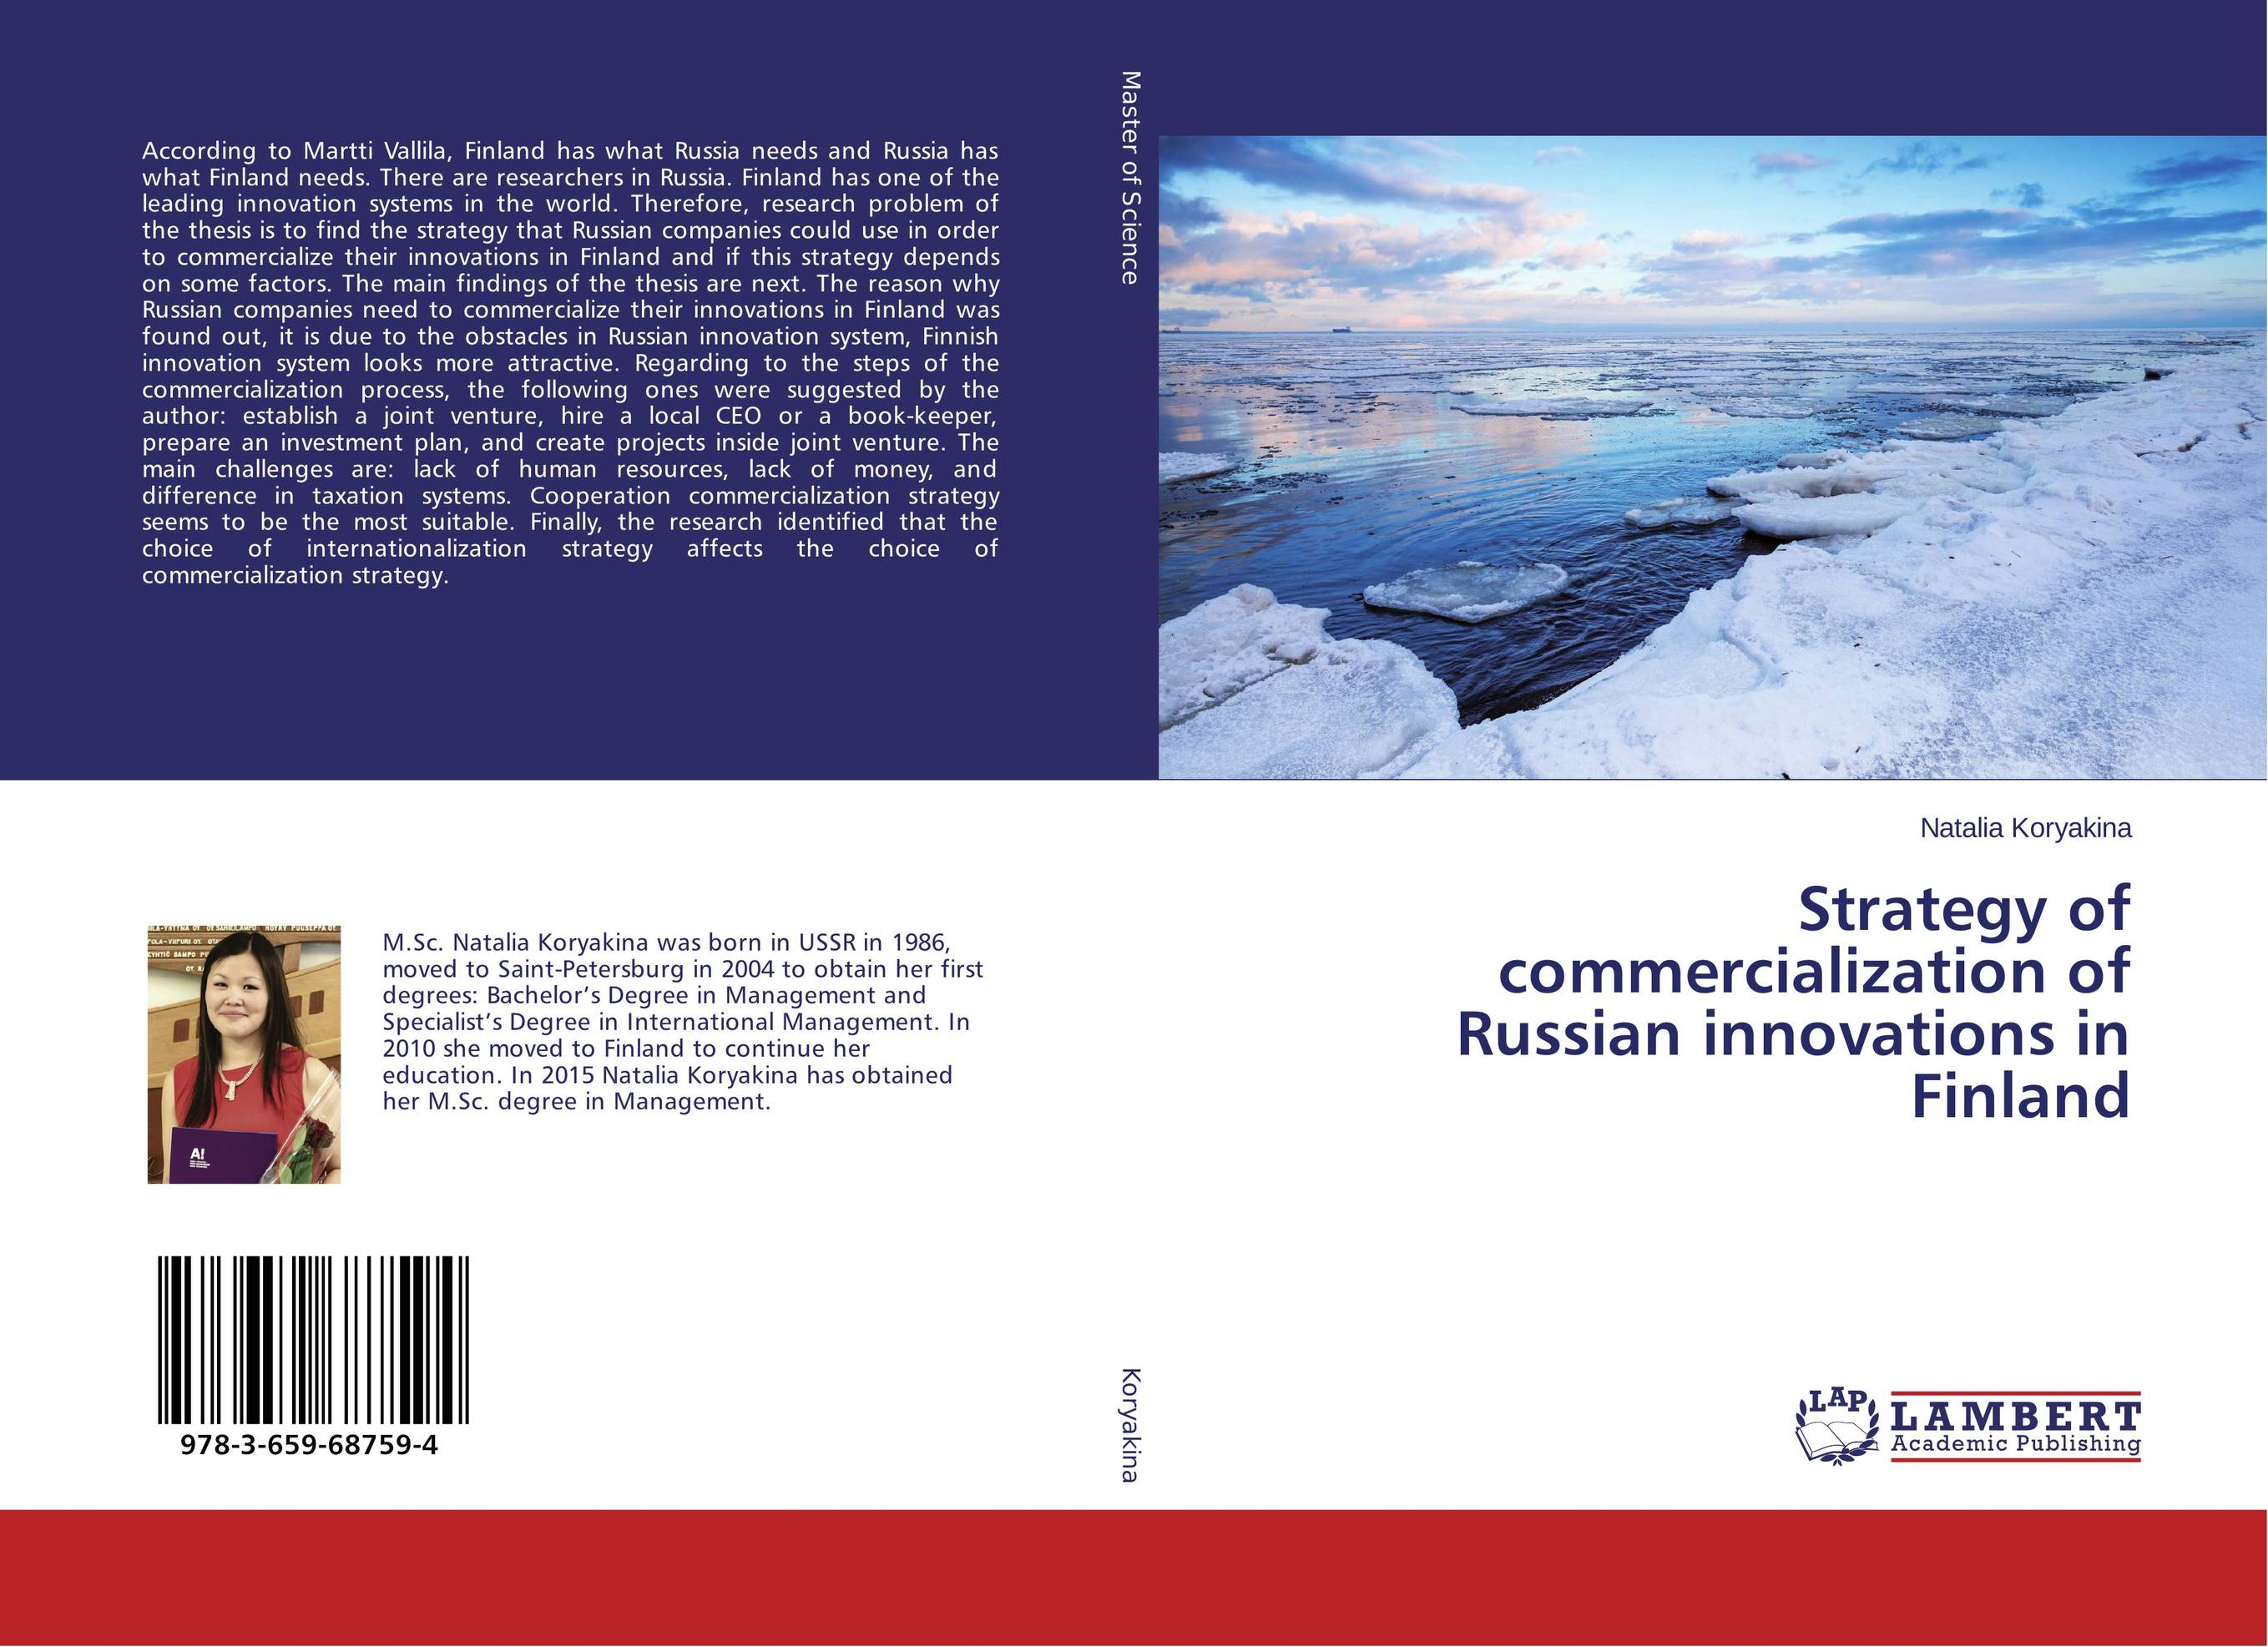 Strategy of commercialization of Russian innovations in Finland duncan bruce the dream cafe lessons in the art of radical innovation